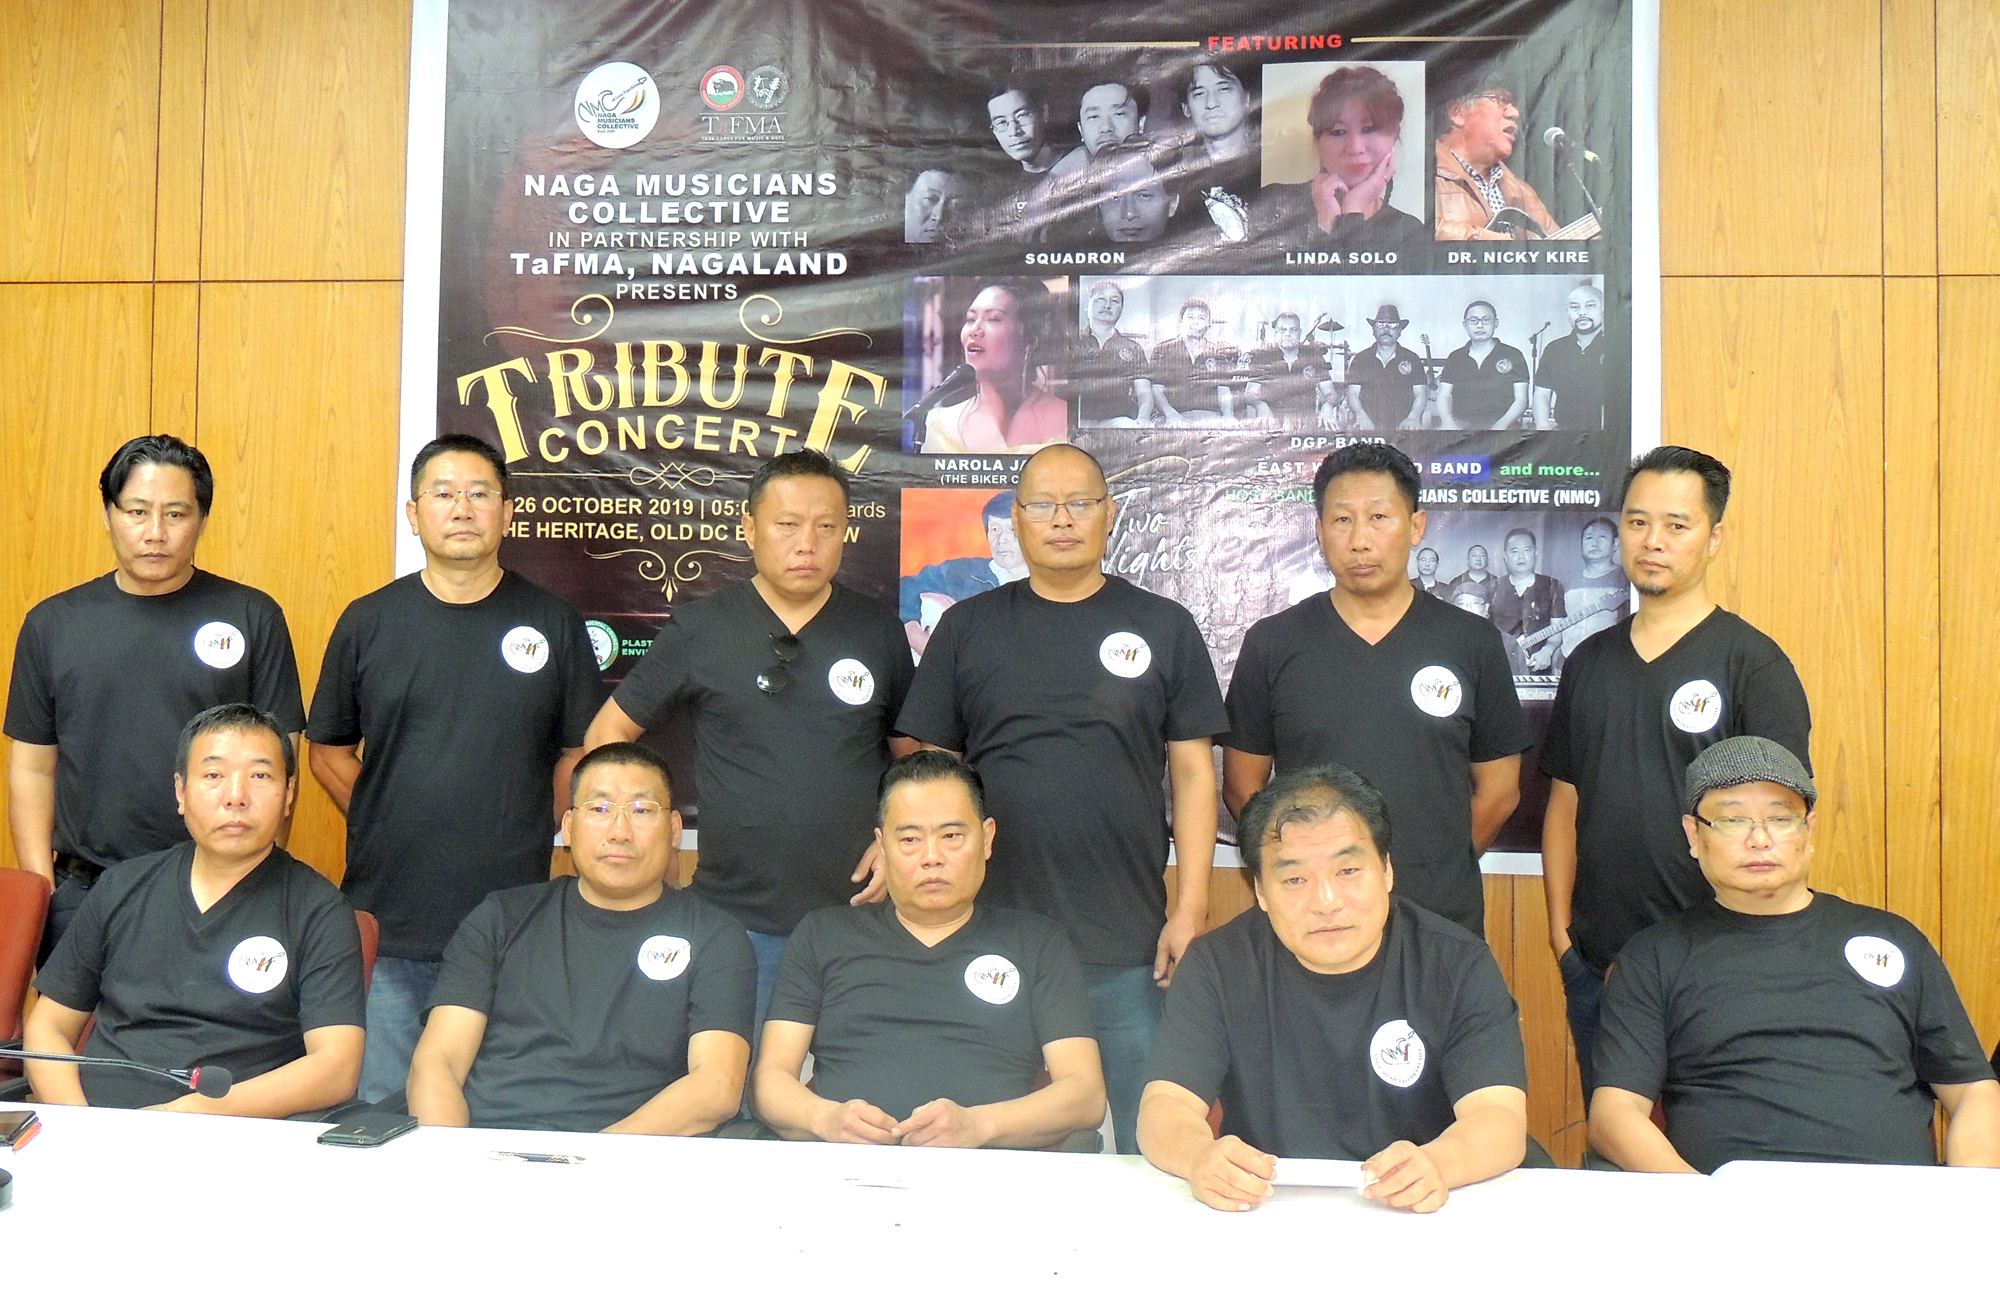 Naga Musicians Collective to present Tribute Concert